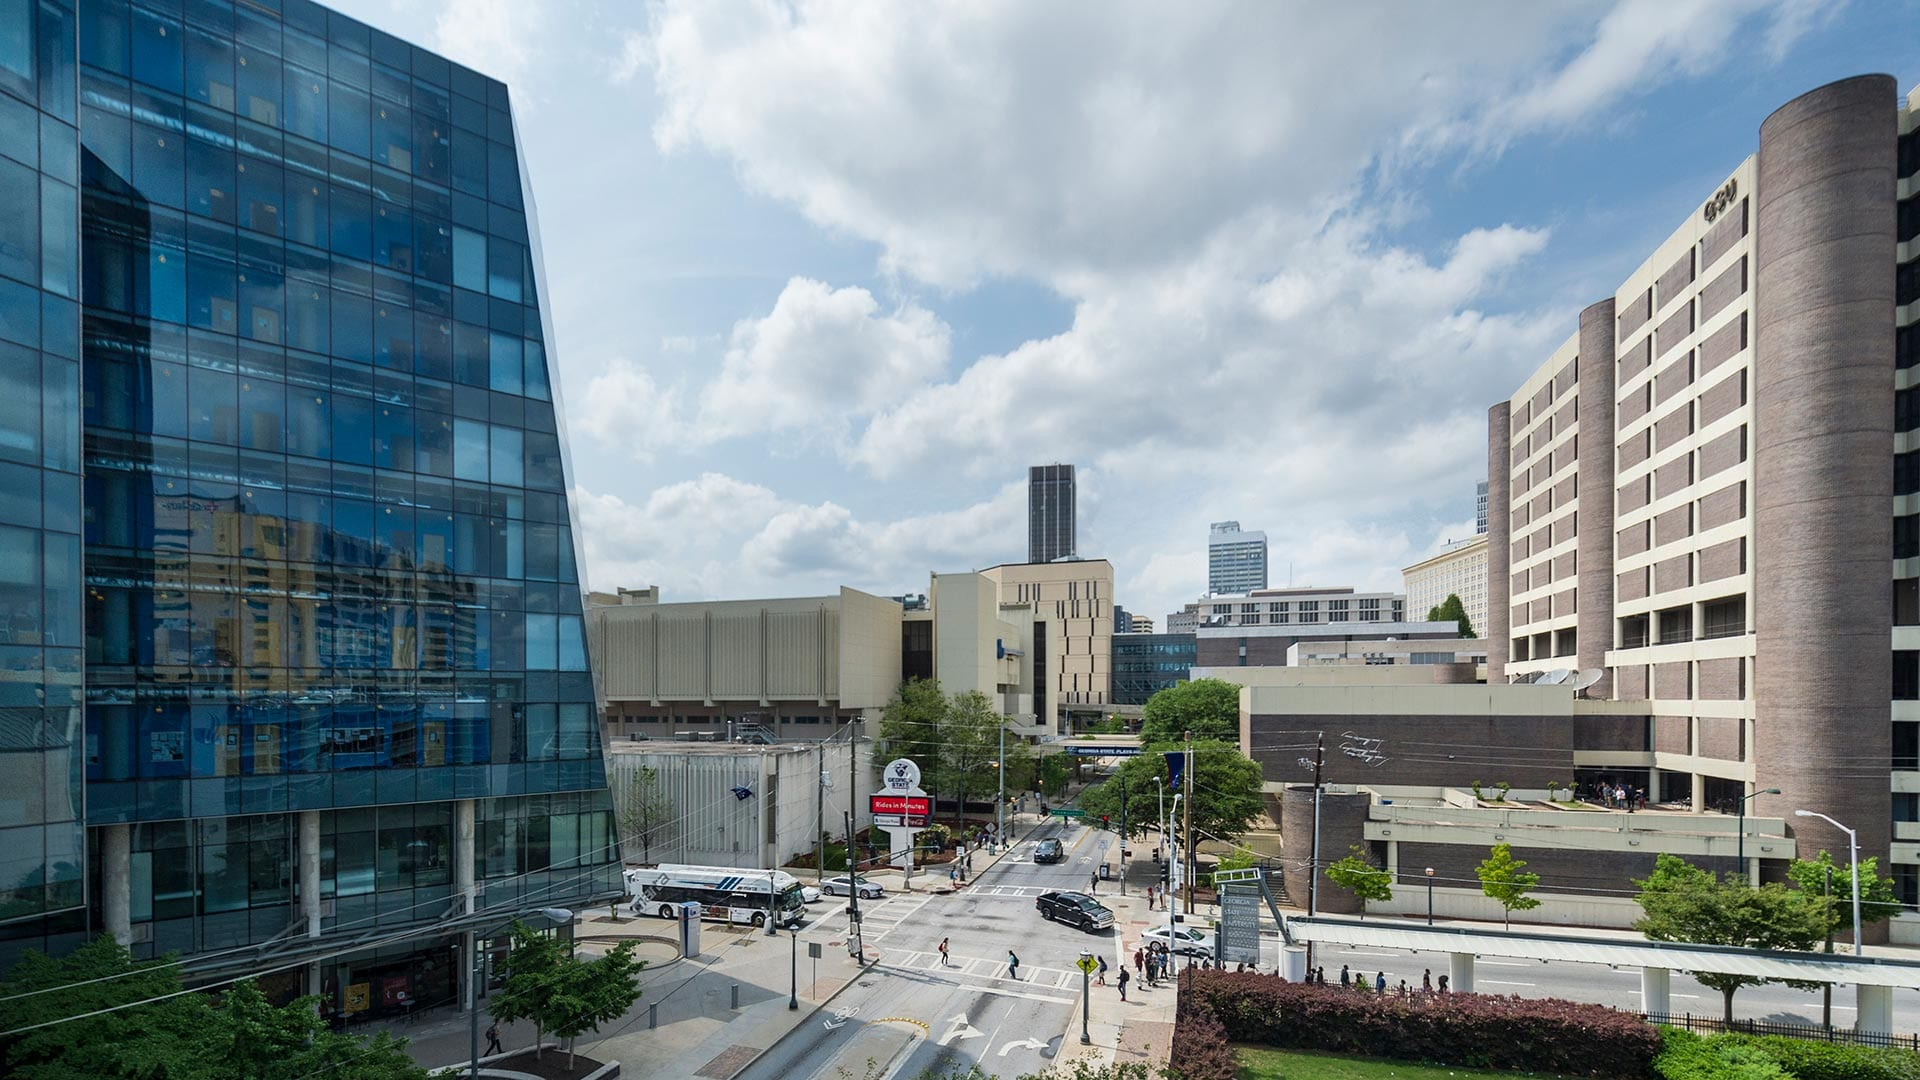 Street view of Piedmont road and the Petit Science Center glass building